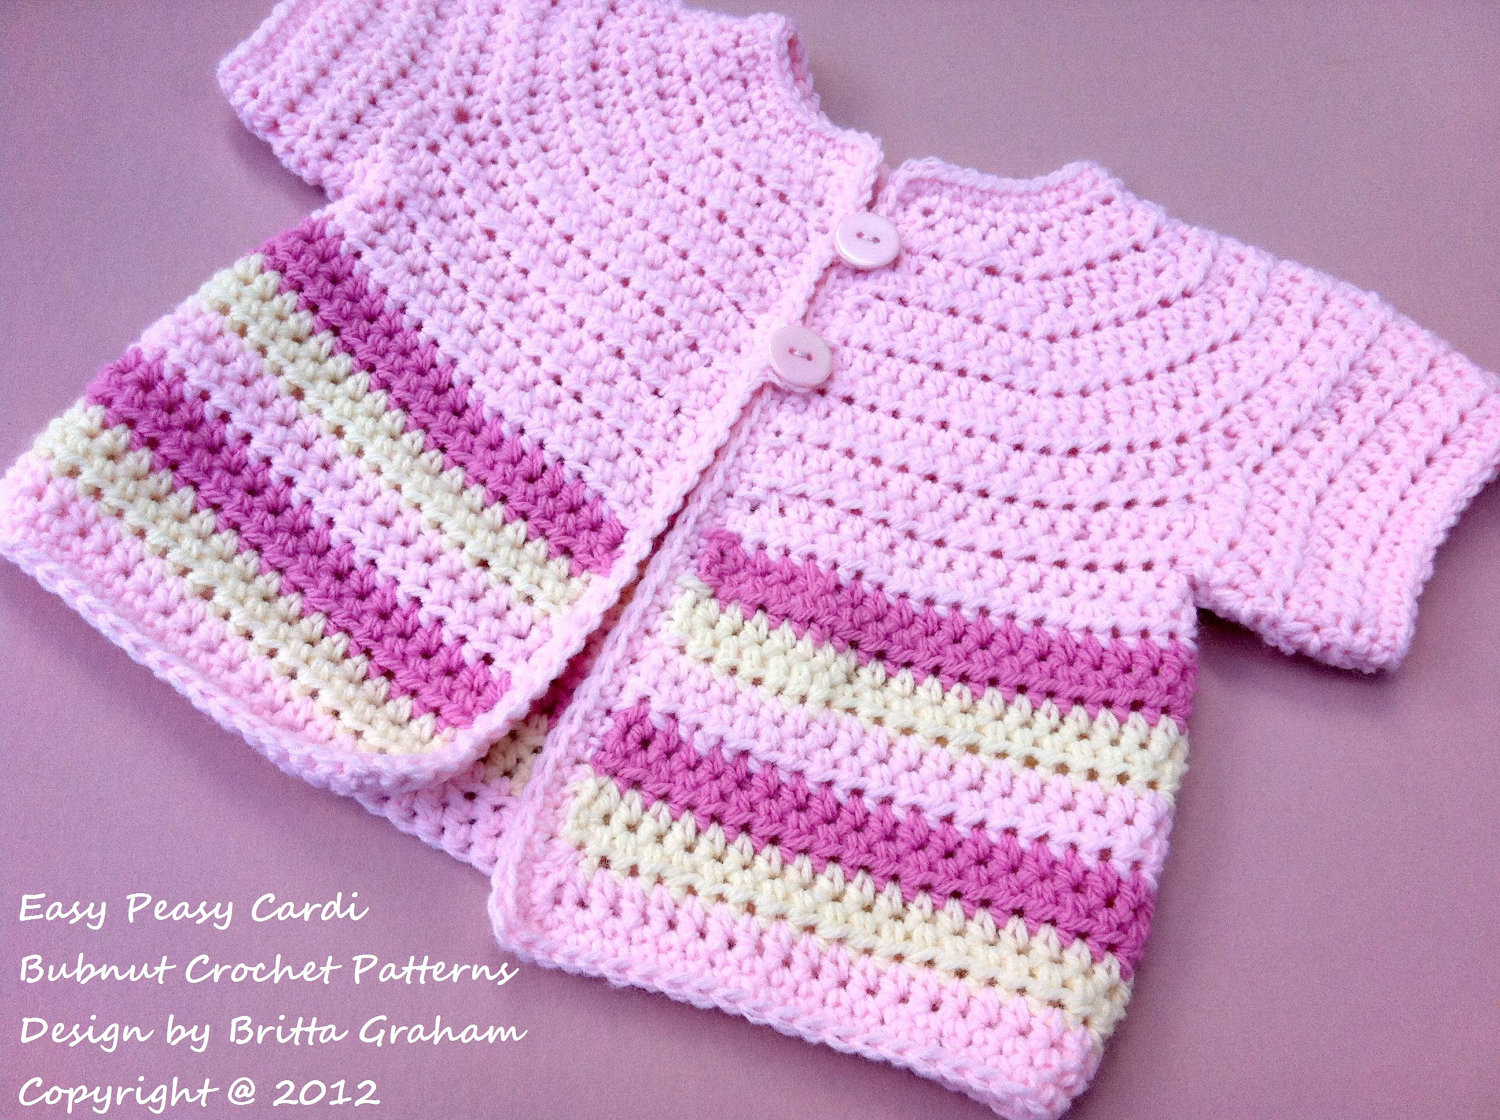 Toddler Sweater Crochet Pattern Unique Easy Crochet Sweater Patterns for Children Of Attractive 41 Models toddler Sweater Crochet Pattern